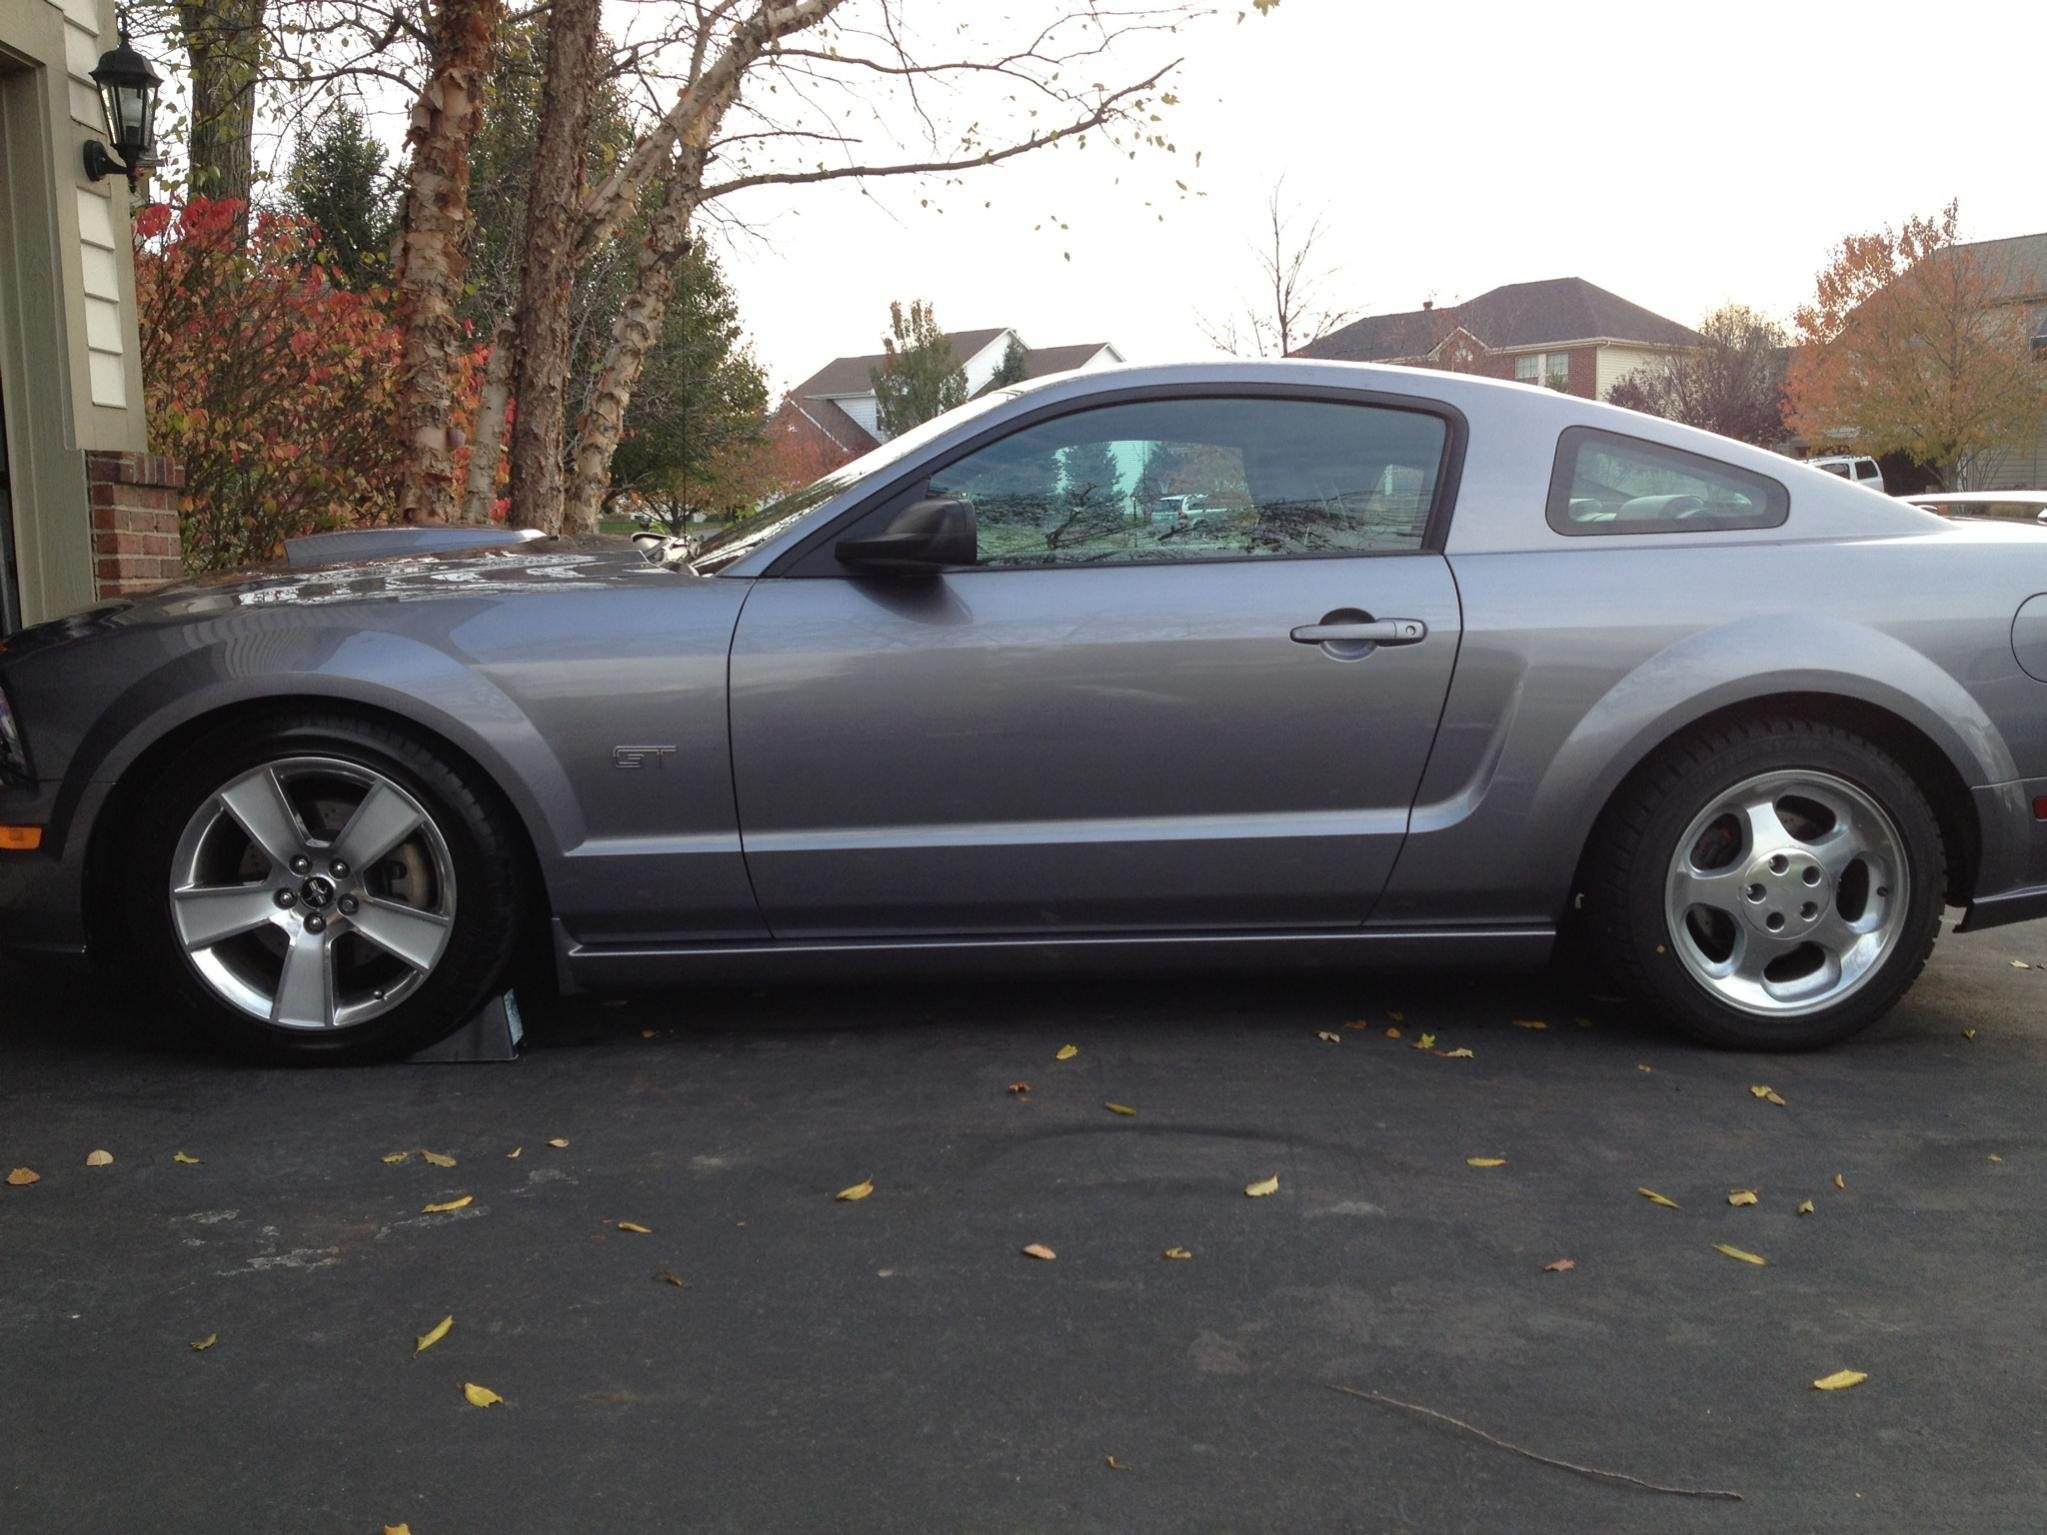 2007 mustang gt winter tire setup ford mustang forum. Black Bedroom Furniture Sets. Home Design Ideas